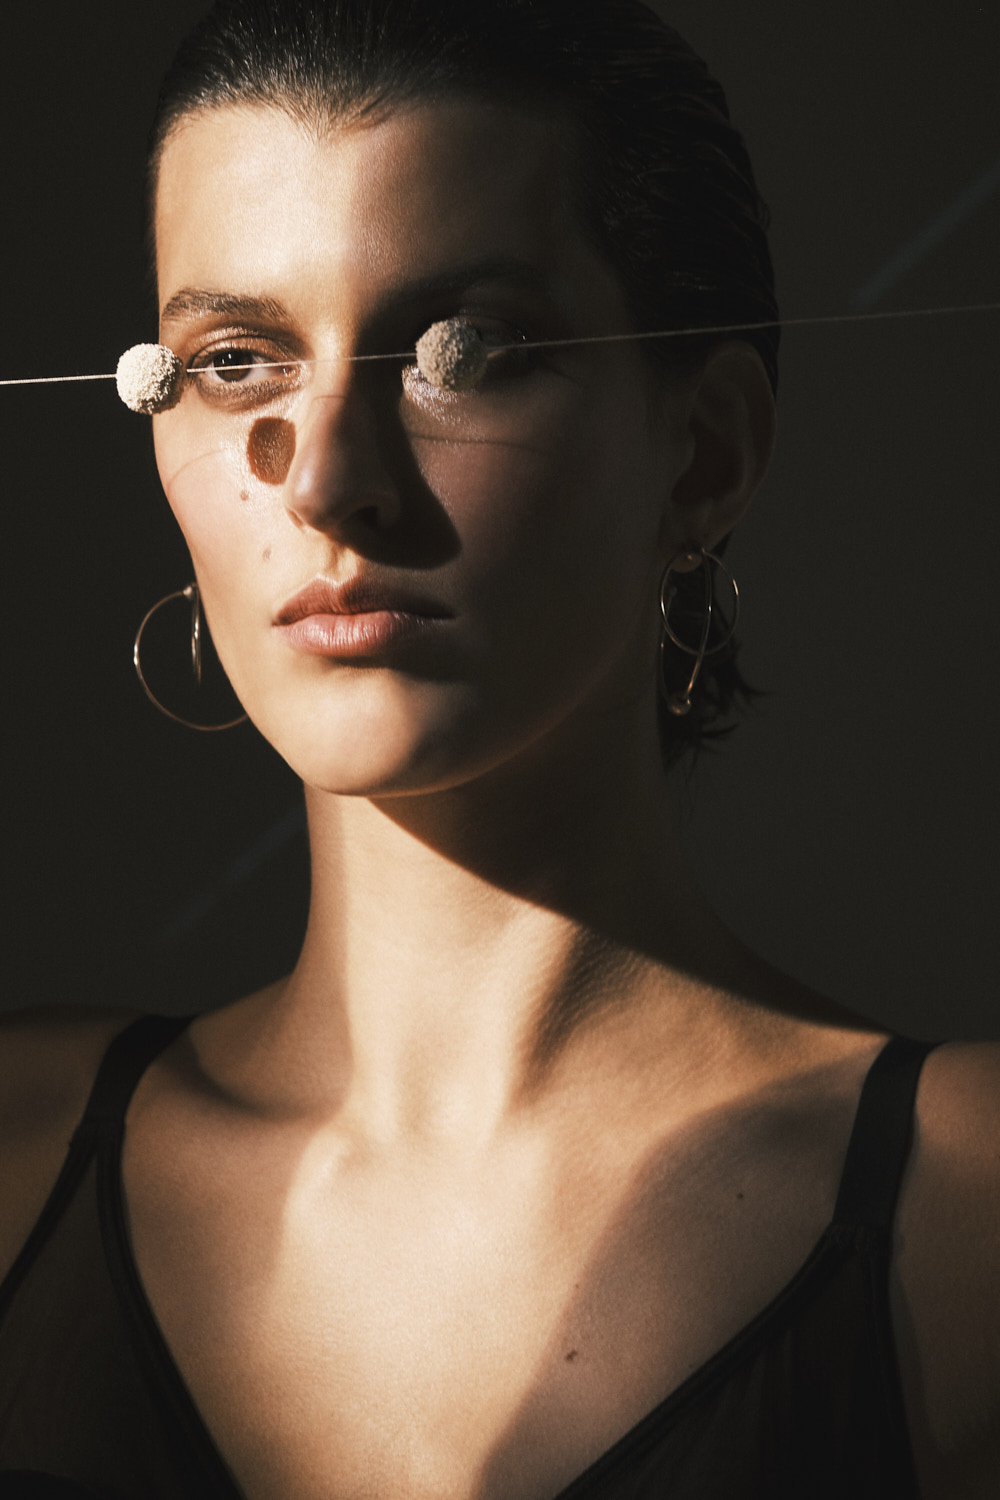 Fashion Editorial: Eye of Another World – ethical vegan fashion editorial by Brix & Maas for Antagonist